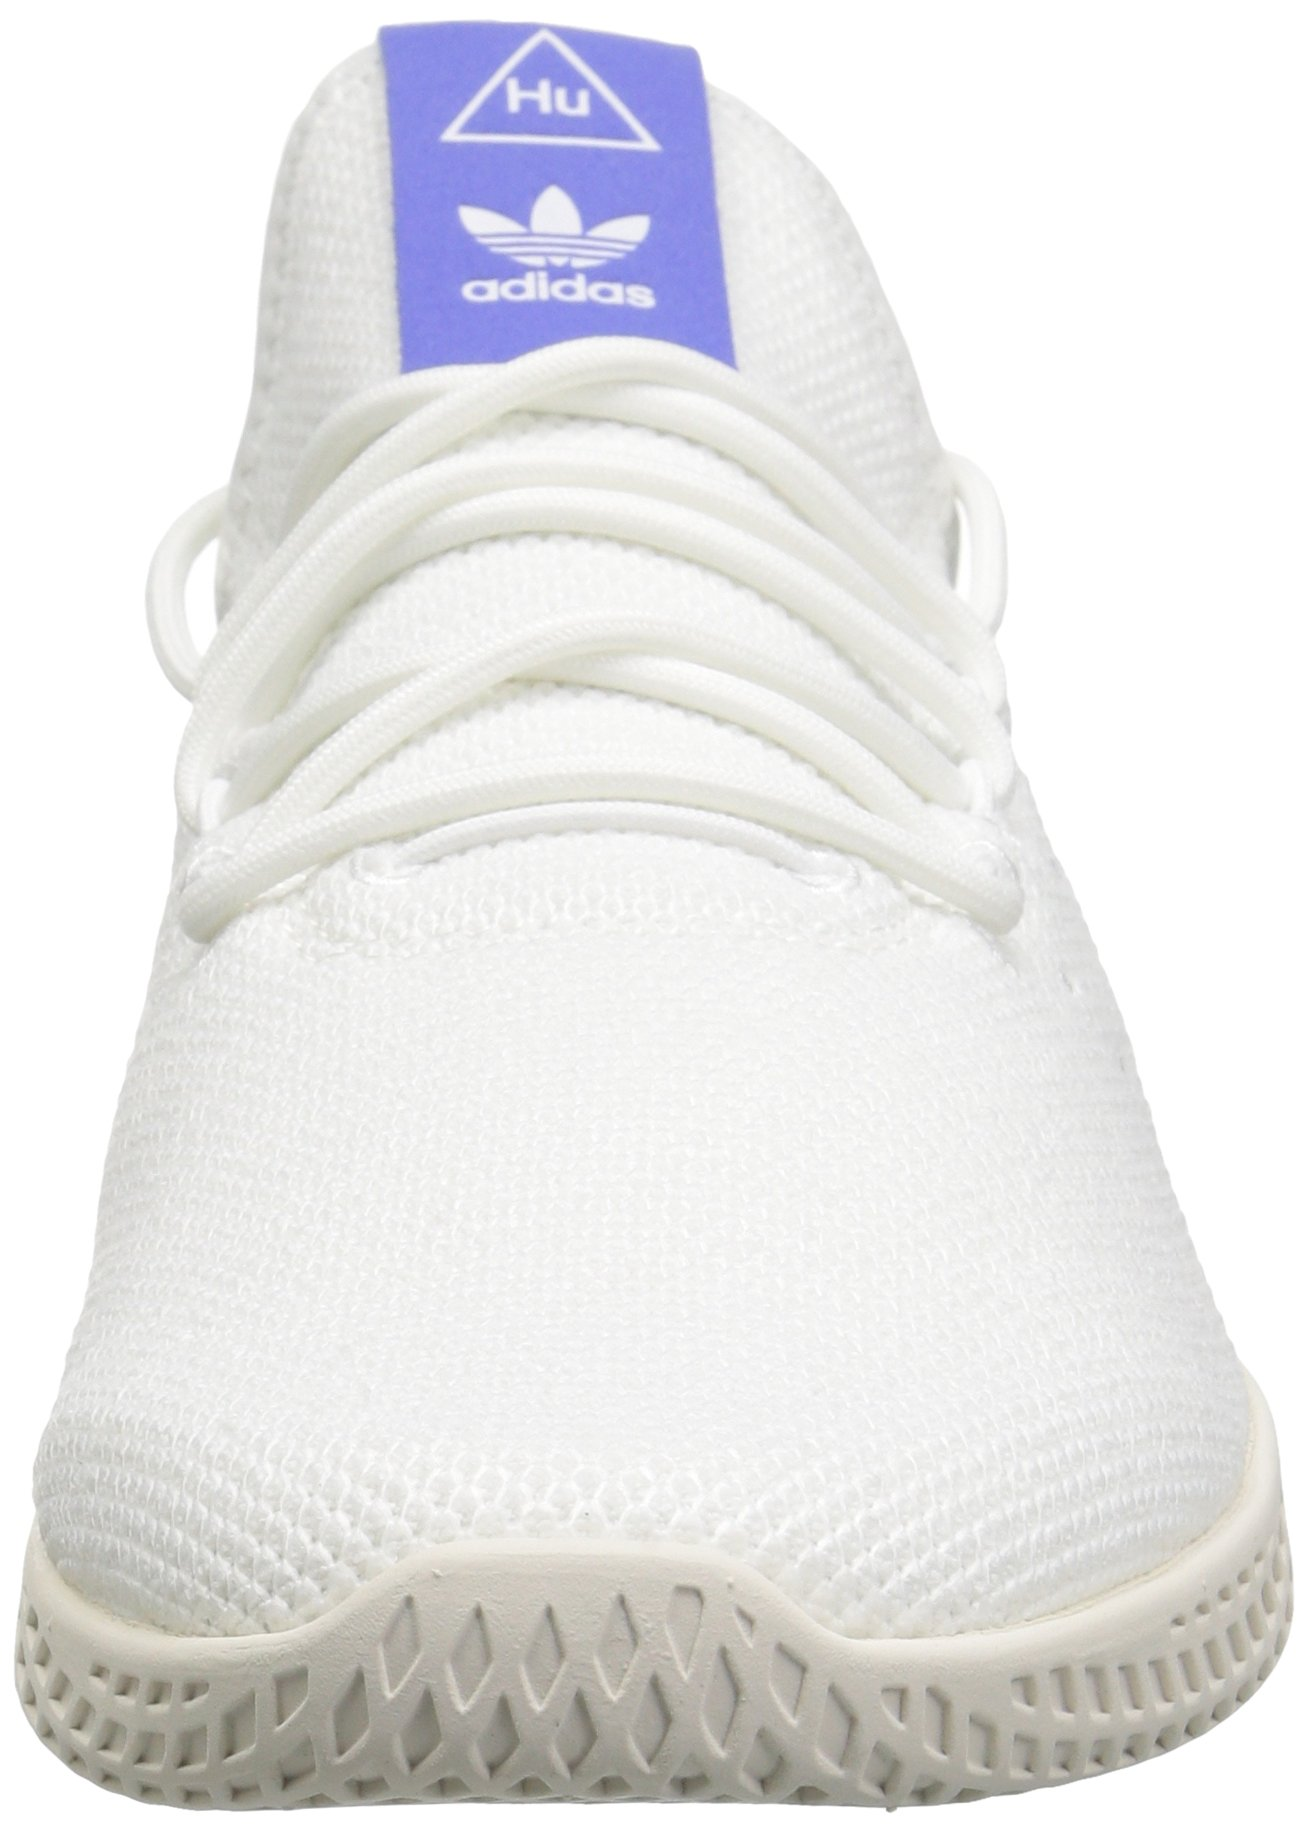 adidas Originals Men's Pharrell Williams Tennis HU Running Shoe, White/Chalk, 5.5 M US by adidas Originals (Image #4)